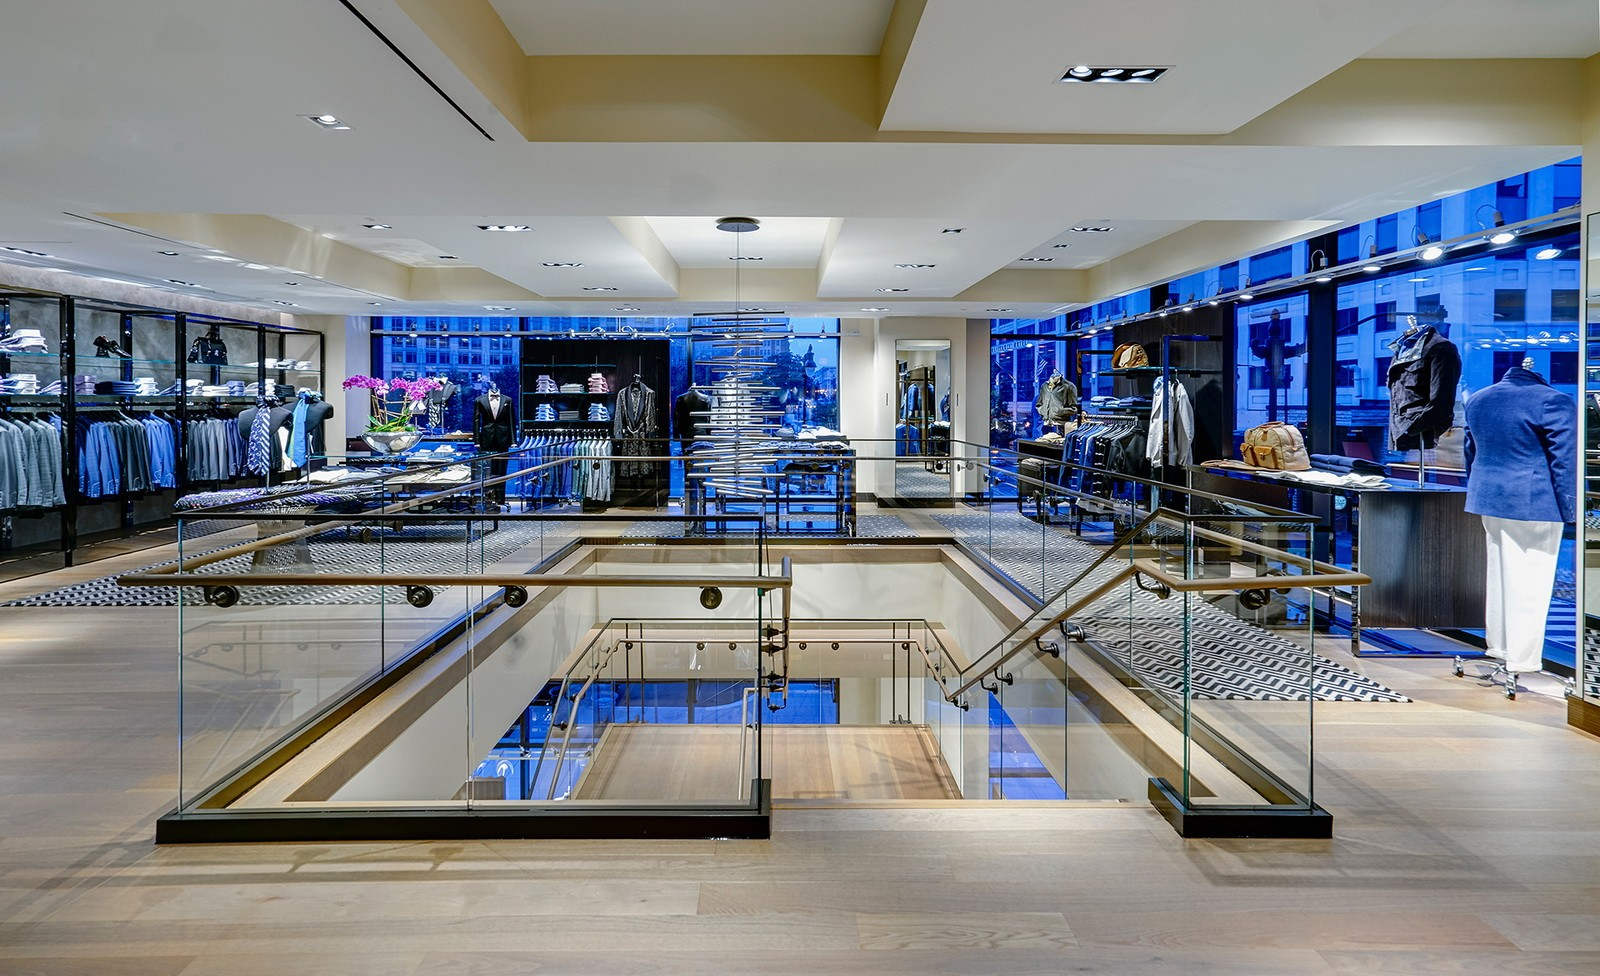 OUYEE high-end garment shop interior design ideas at discount for decoration-4